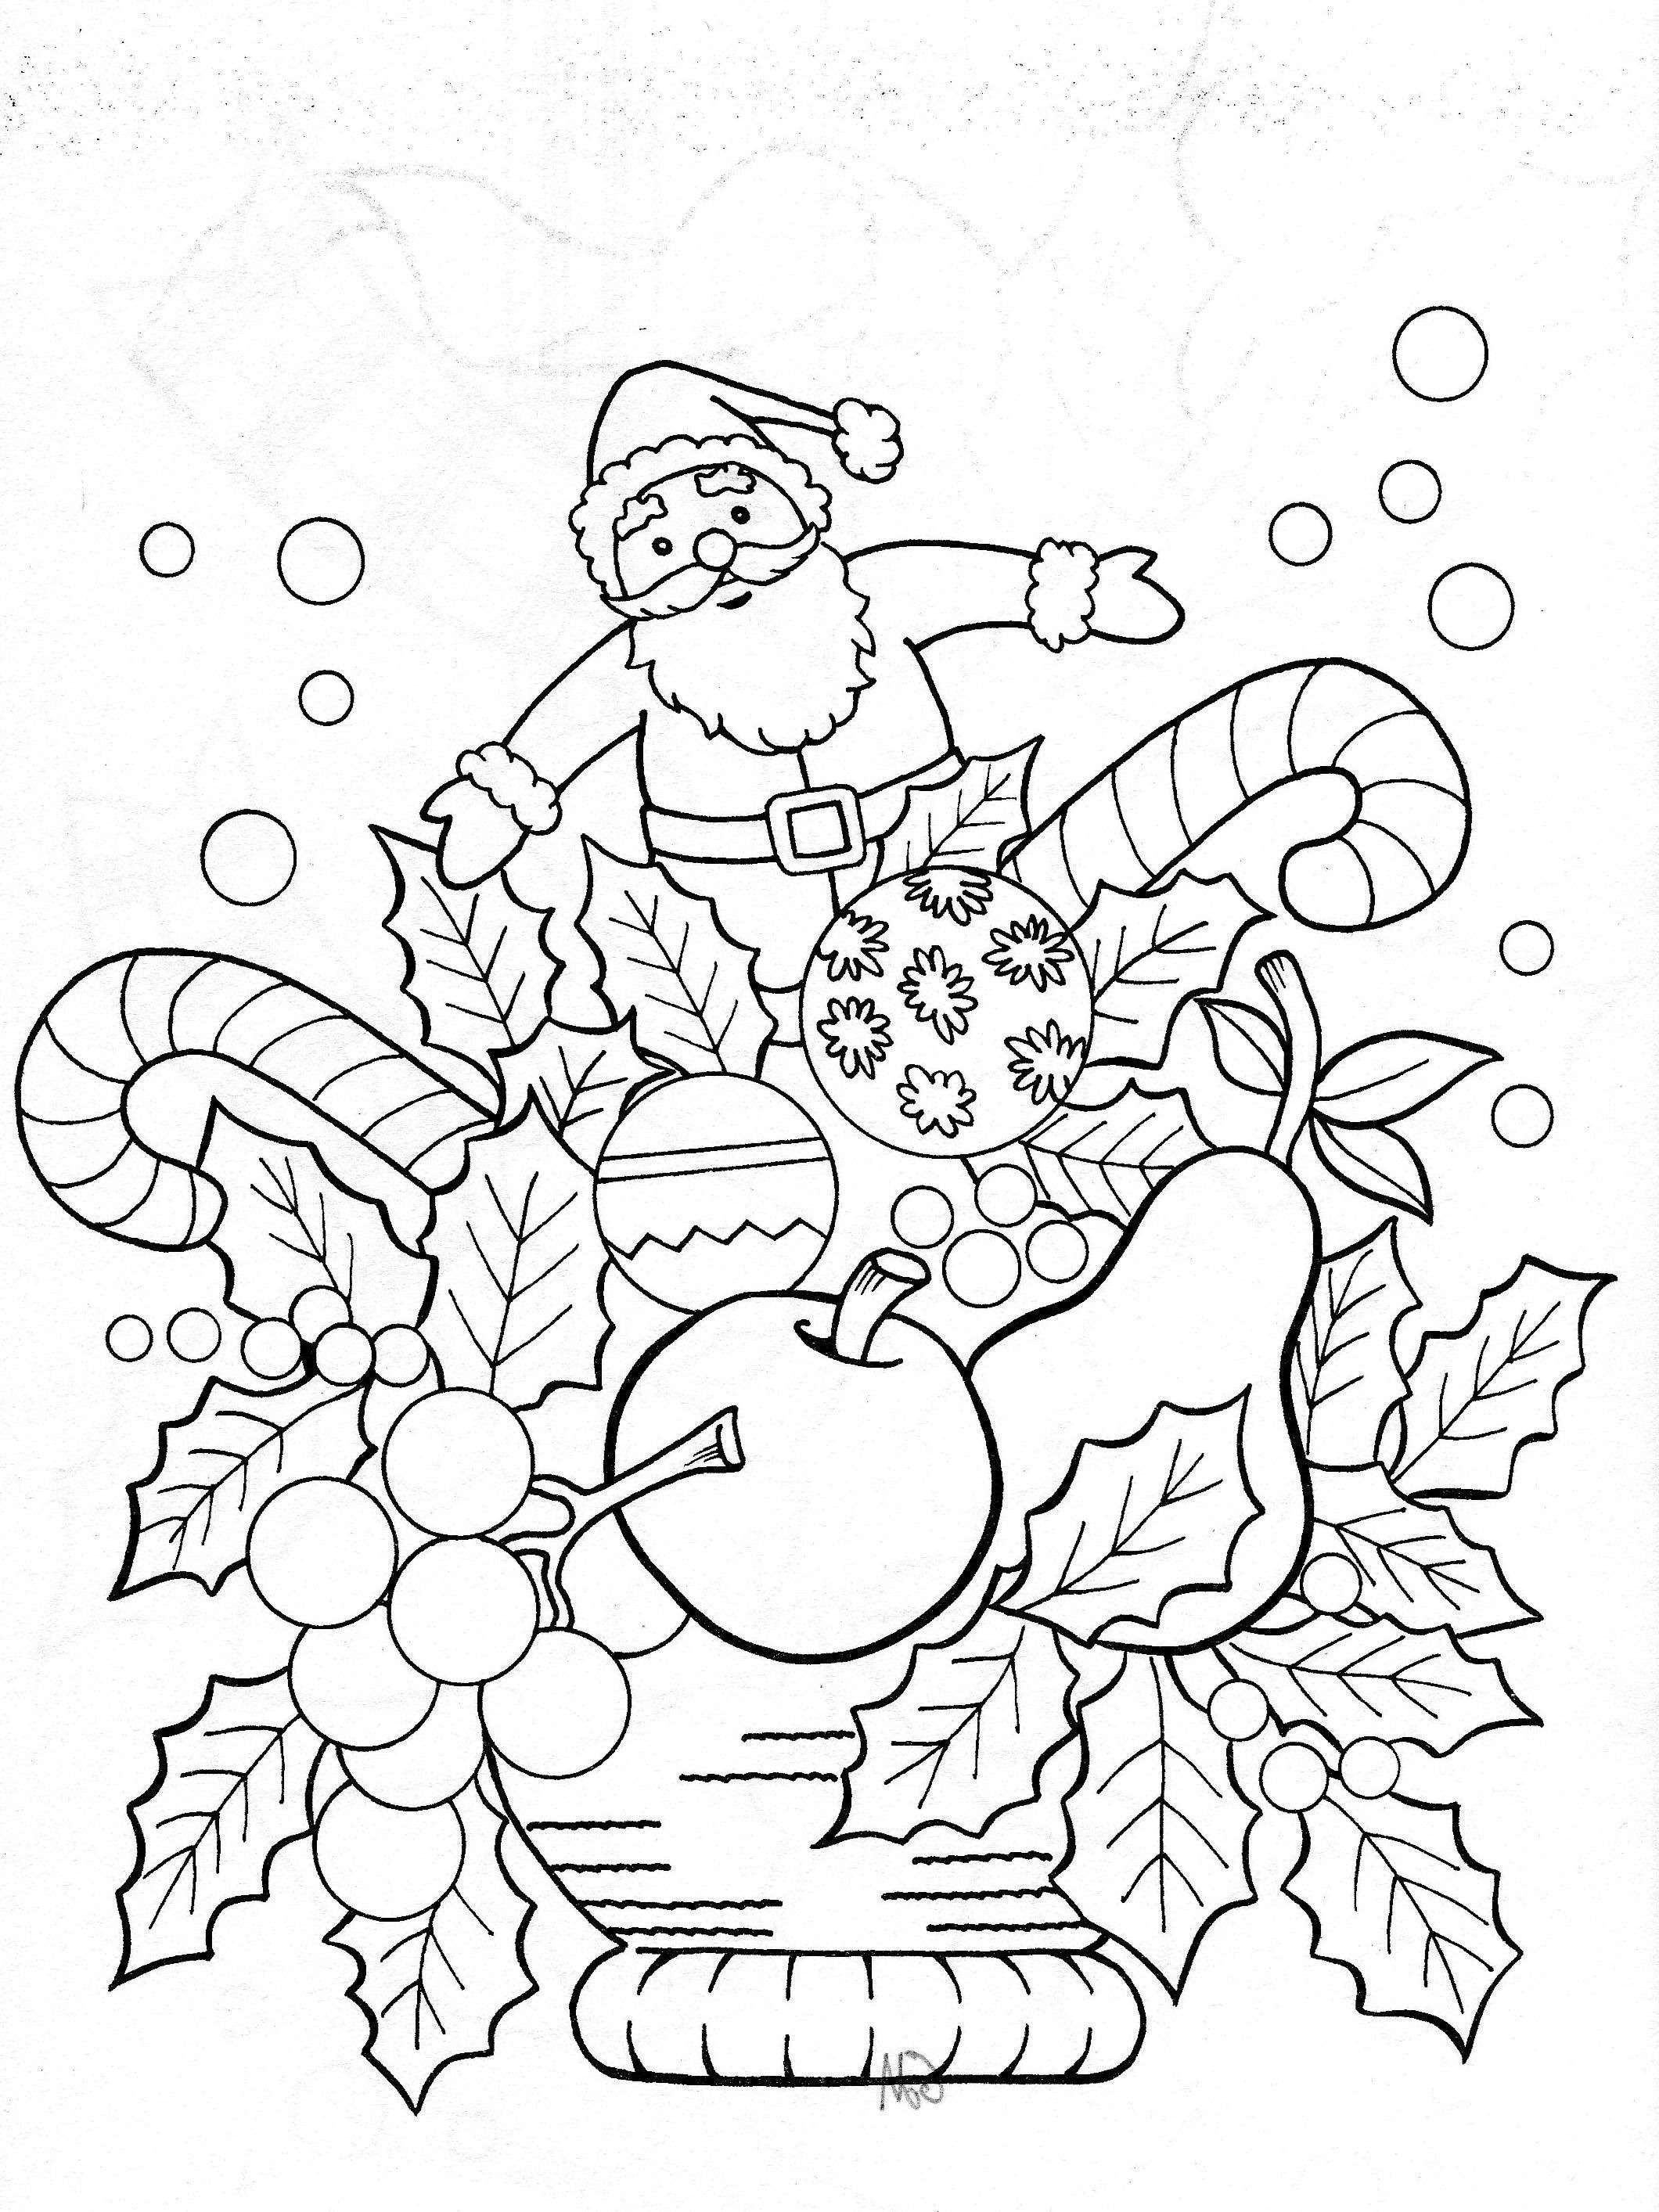 United States Coloring Page Beautiful Christmas Coloring Pages For